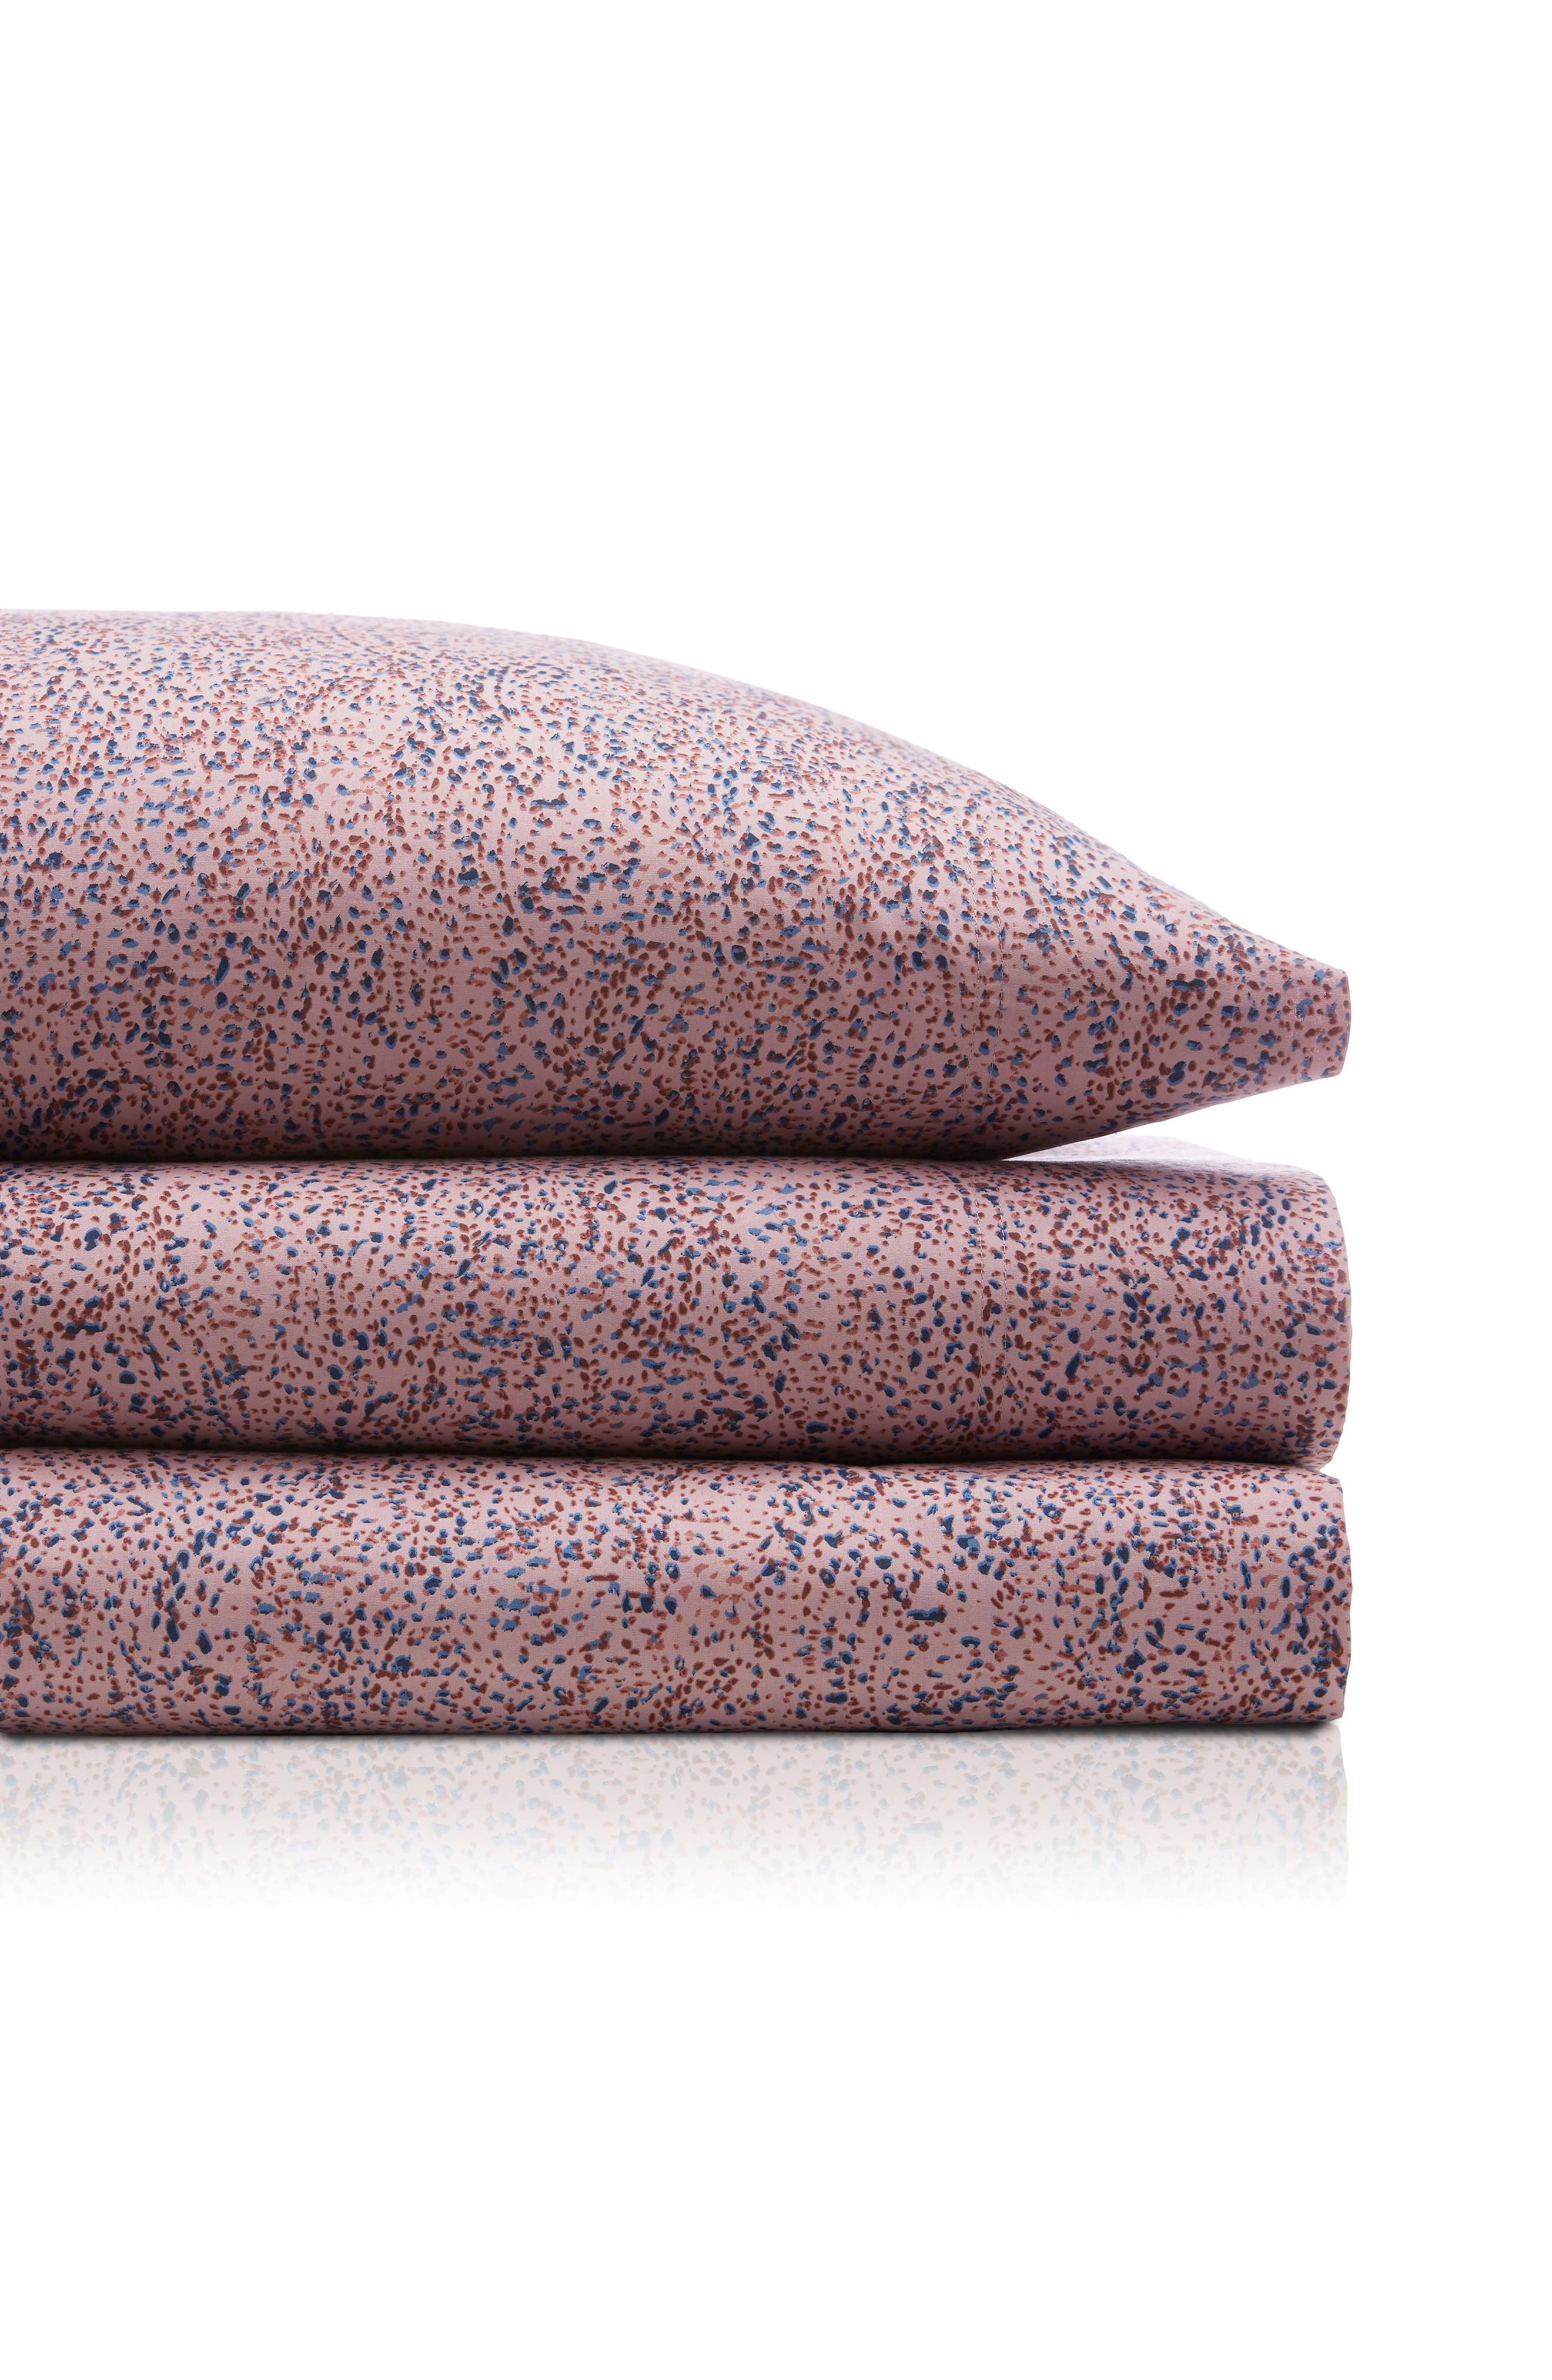 BCBGeneration Small Dots Set of 2 Pillowcases